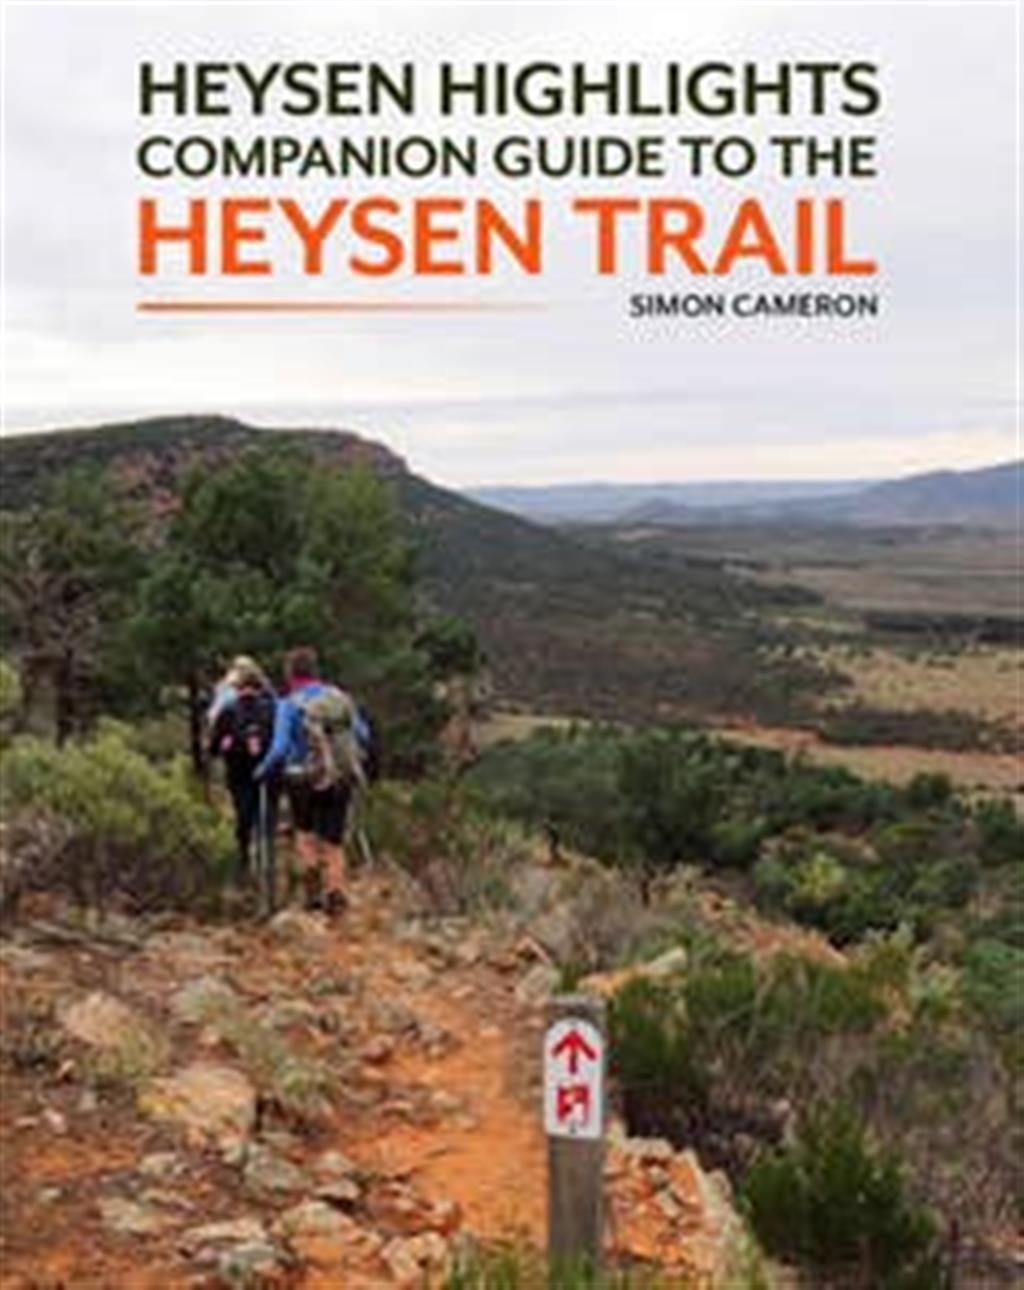 Flinders Ranges Bed and Breakfast - The Heysen Trail